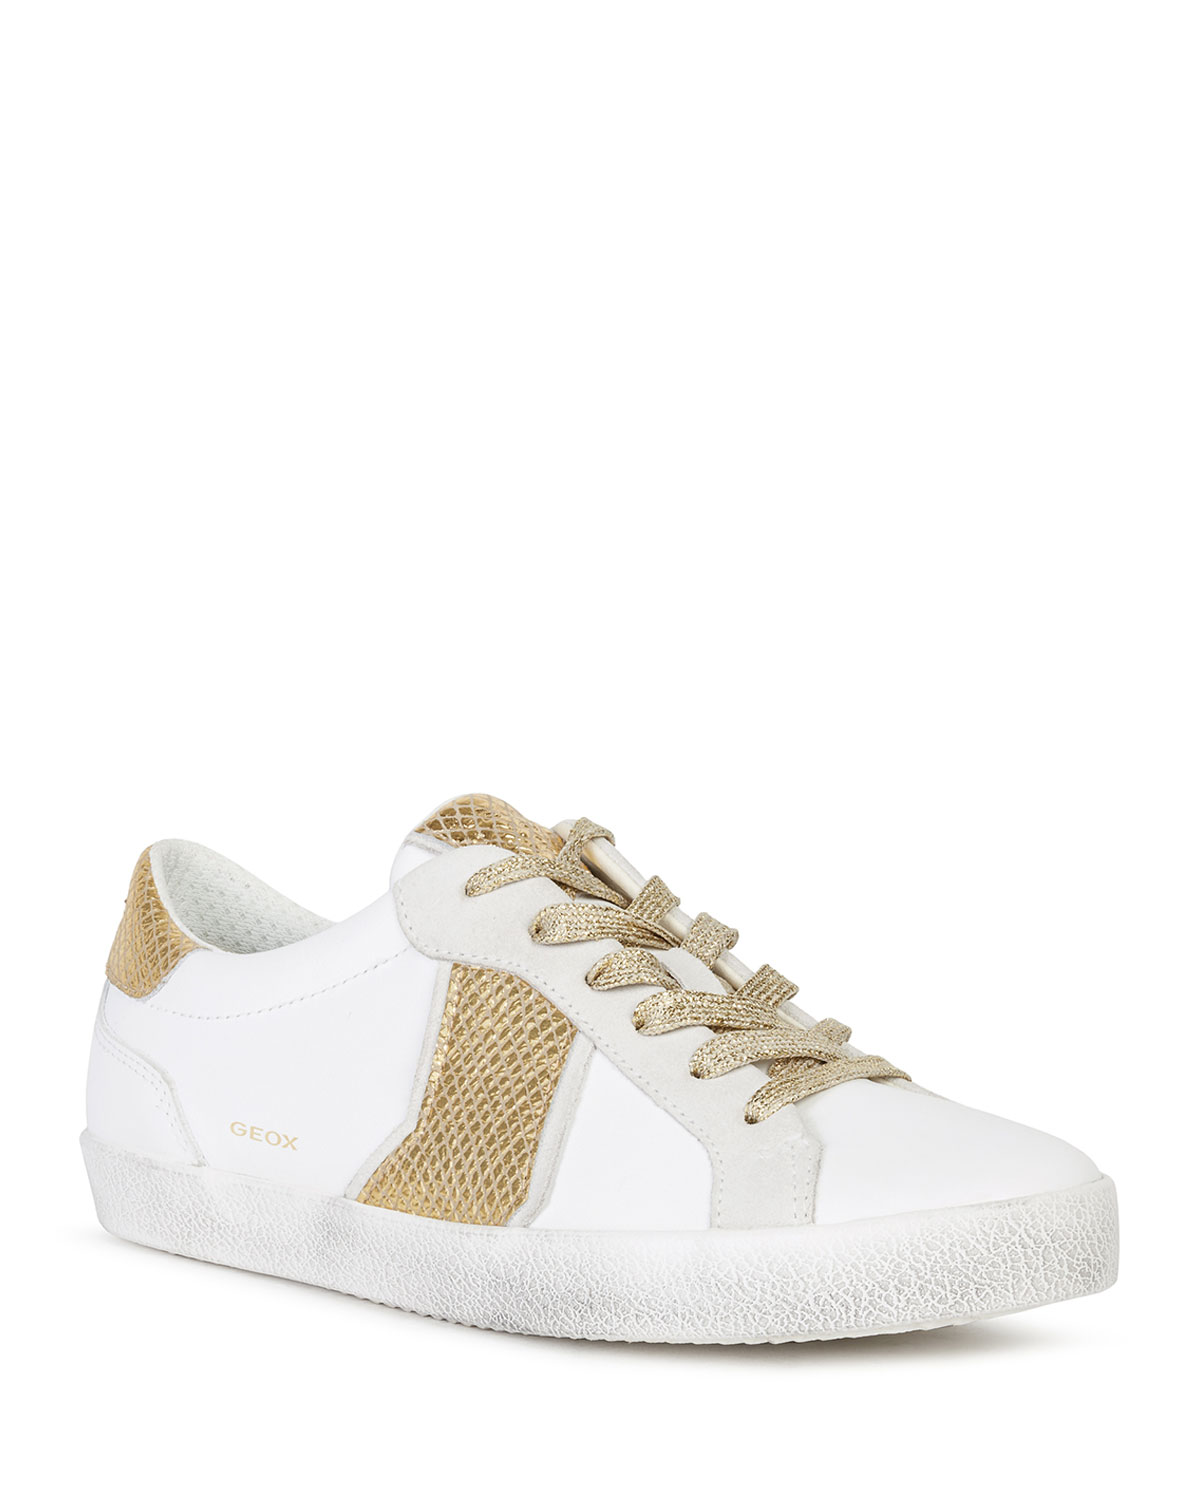 Geox WARLEY MIXED LEATHER LOW-TOP SNEAKERS